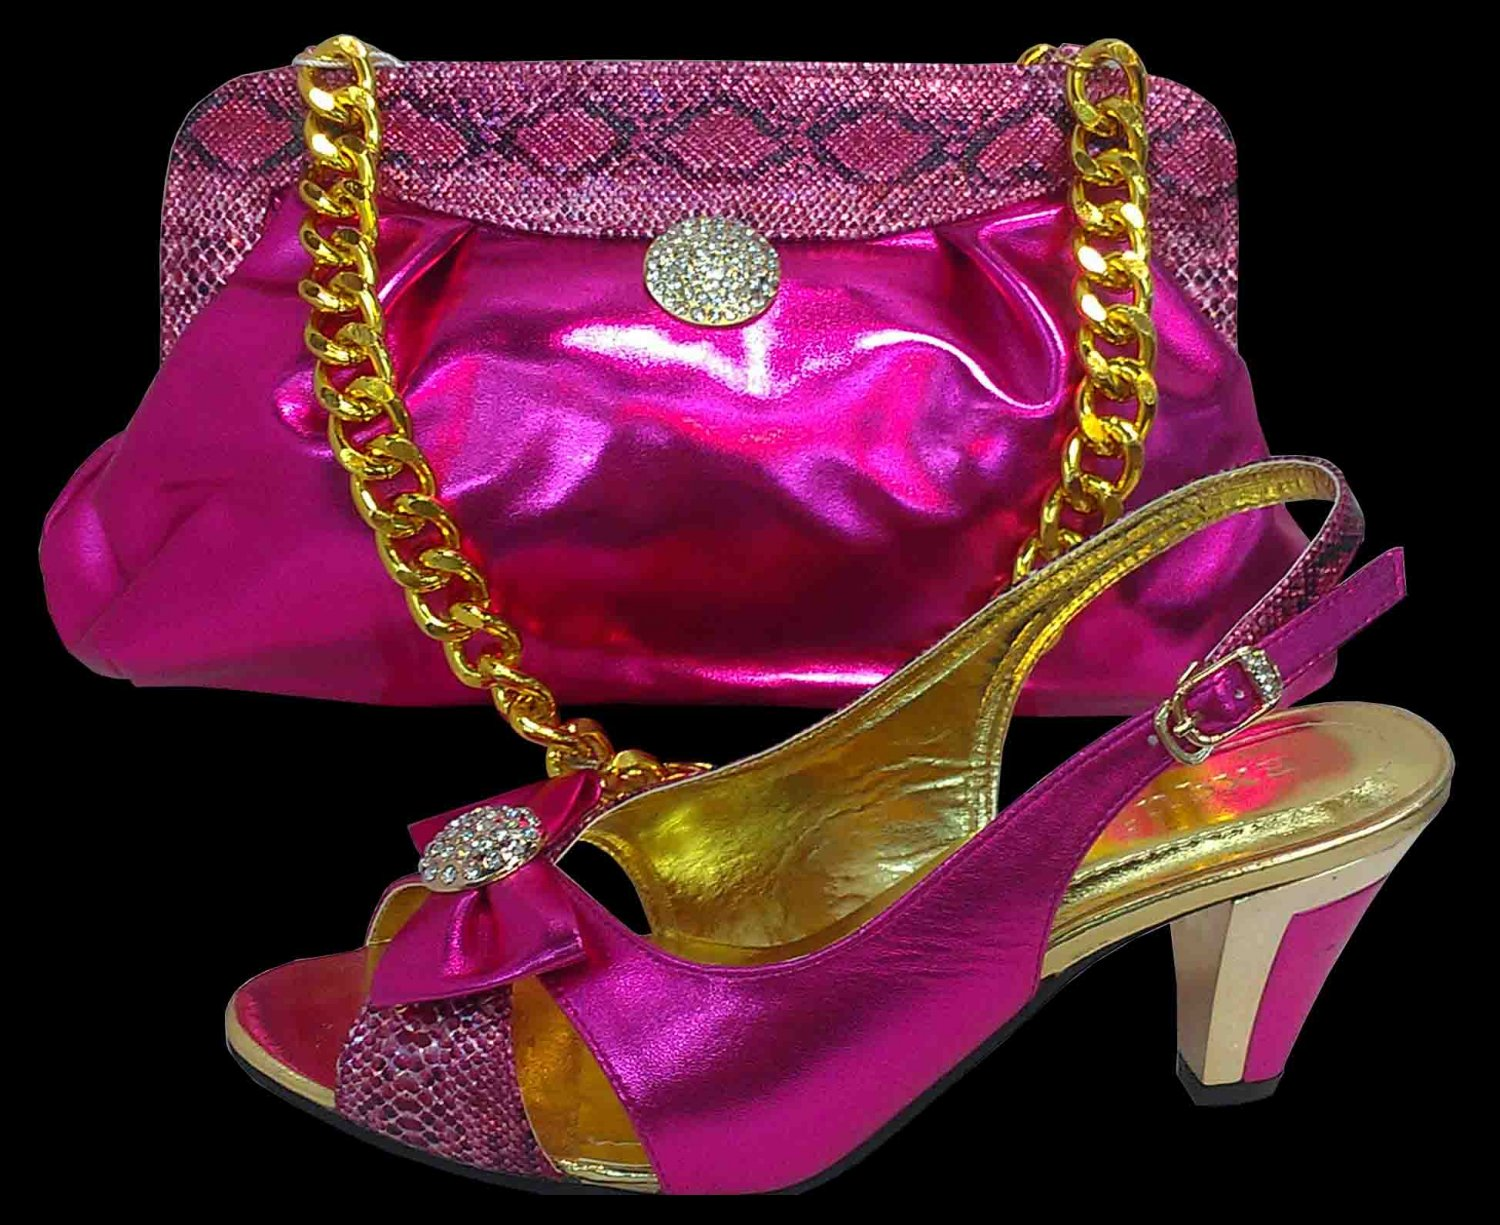 Shoes with matching bag SE1120 colour, Rose, size UK7